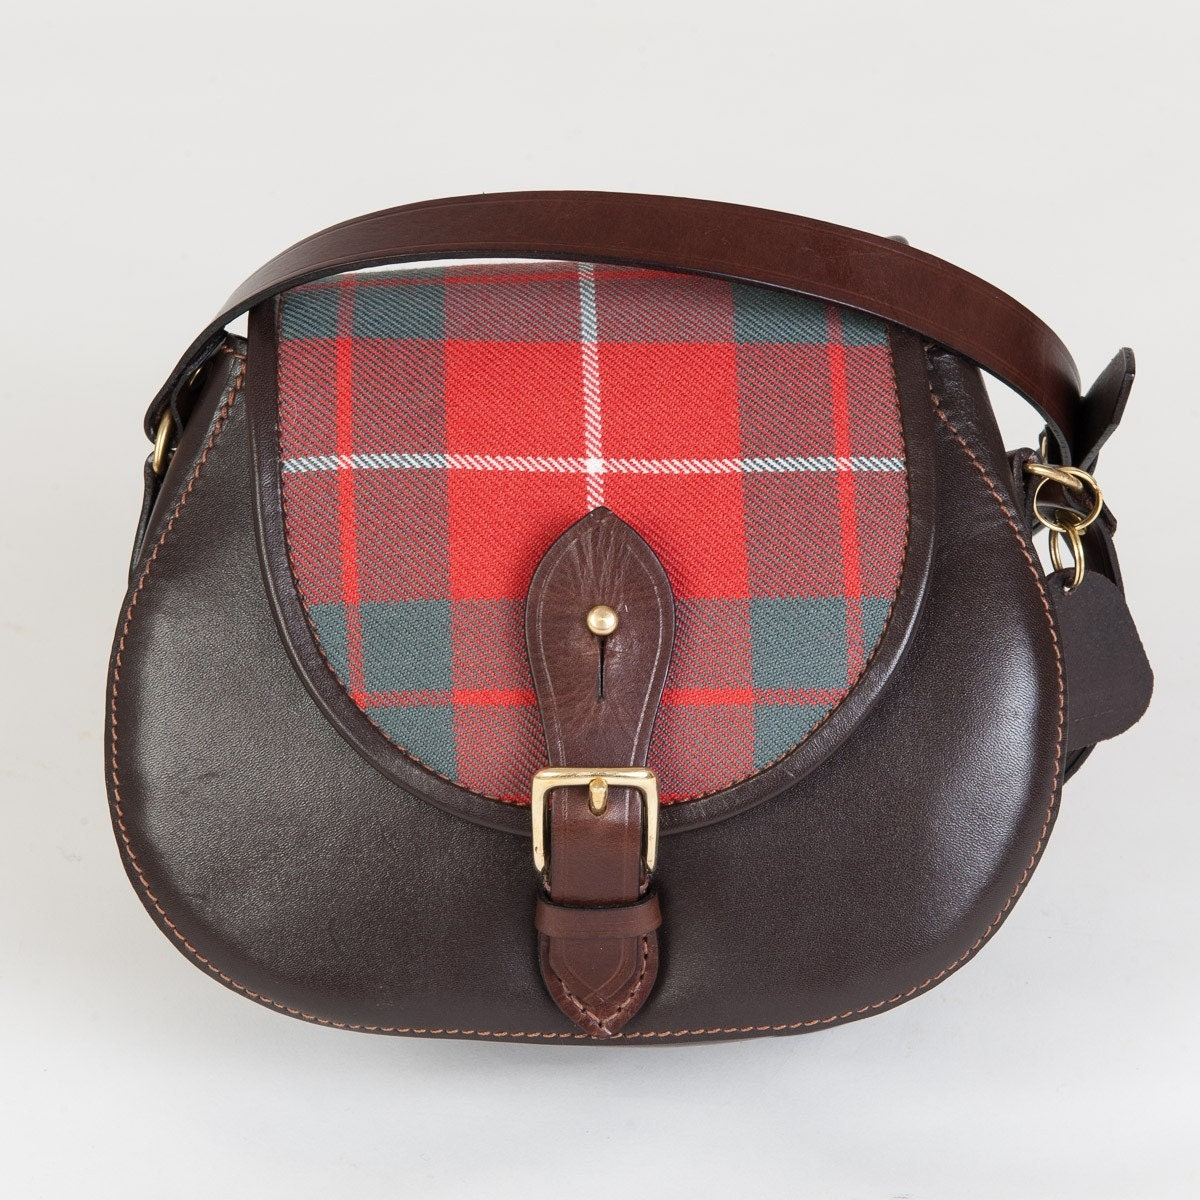 Leather saddlebag tartan saddlebag tartan handbag made in Scotland Scottishstyle handbag Scottish shoulder bag